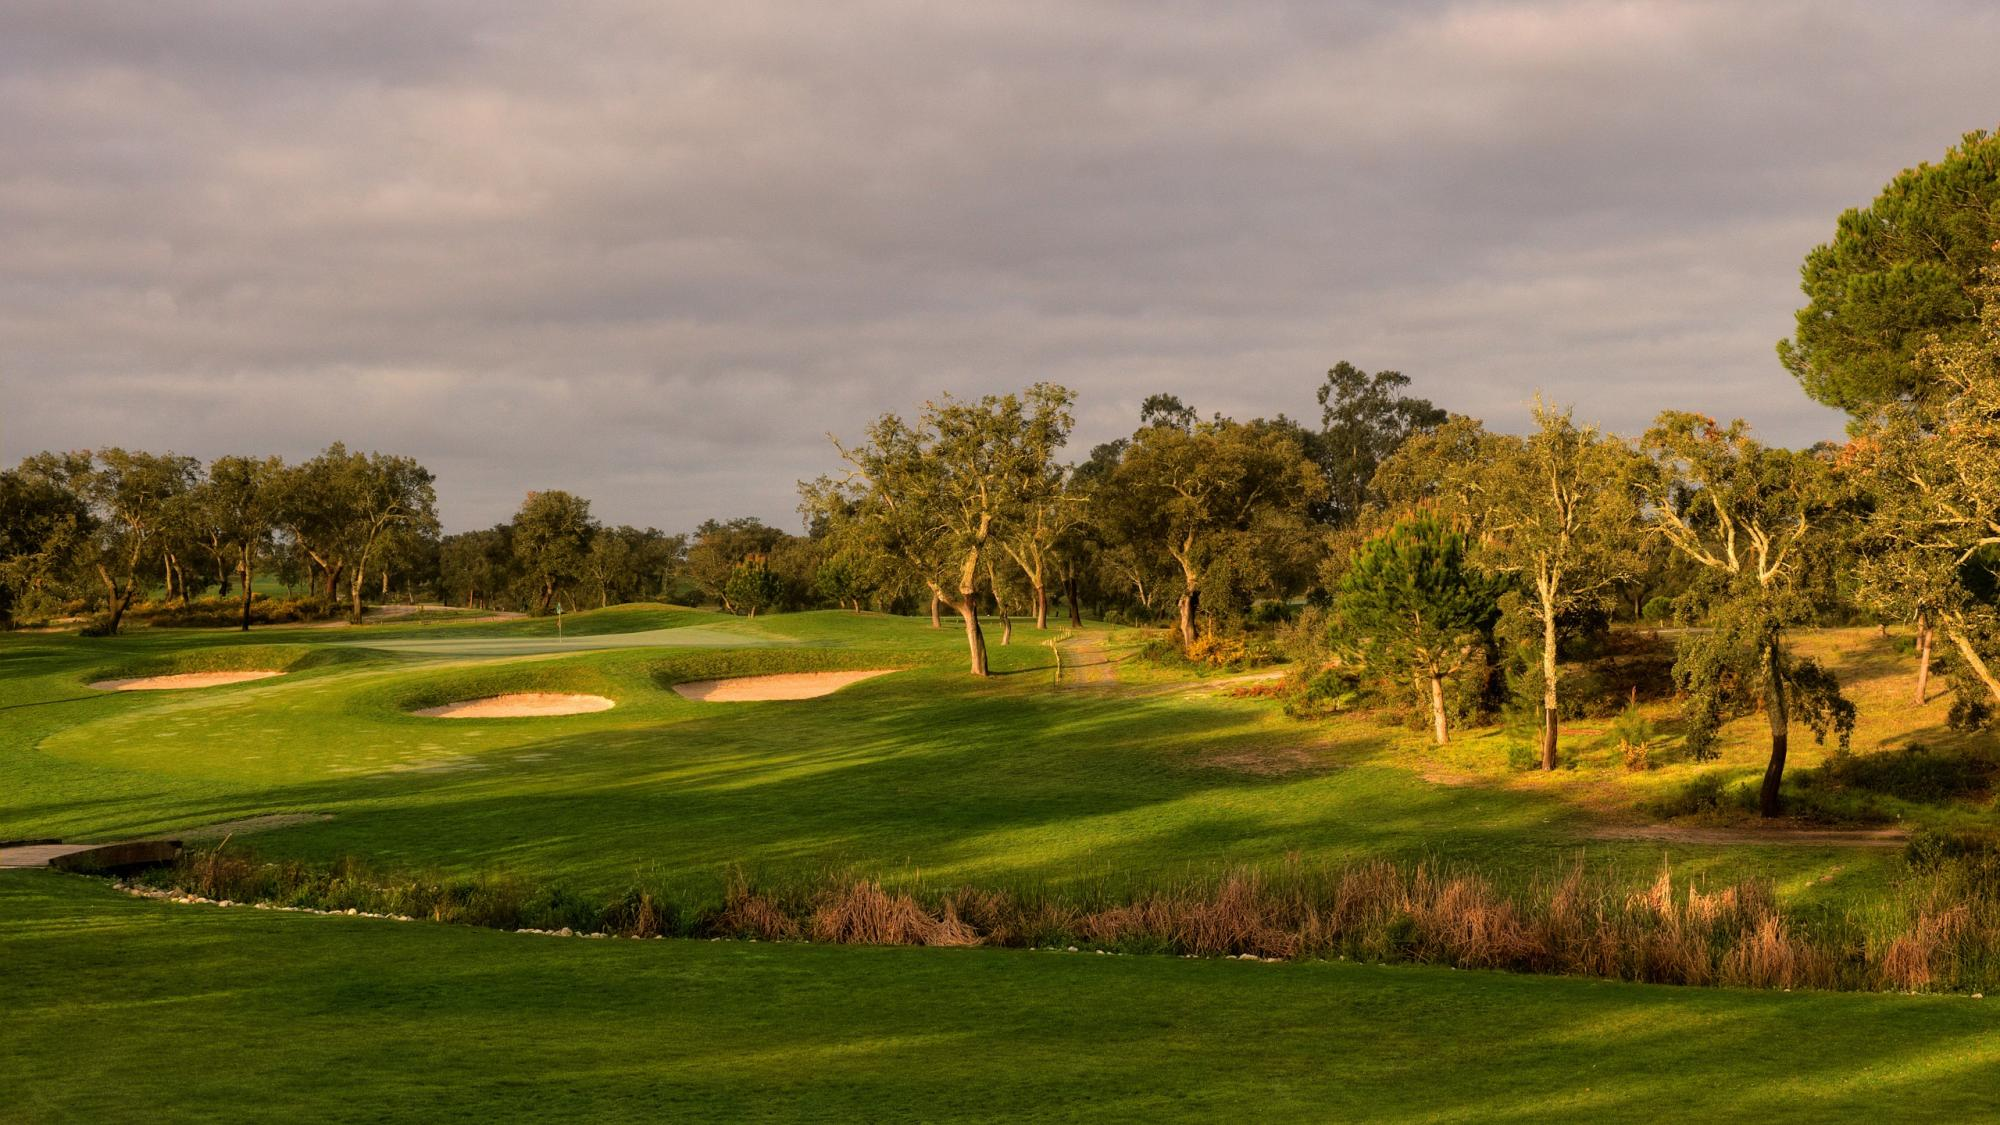 The Riba Golfe 2 's beautiful golf course within staggering Lisbon.